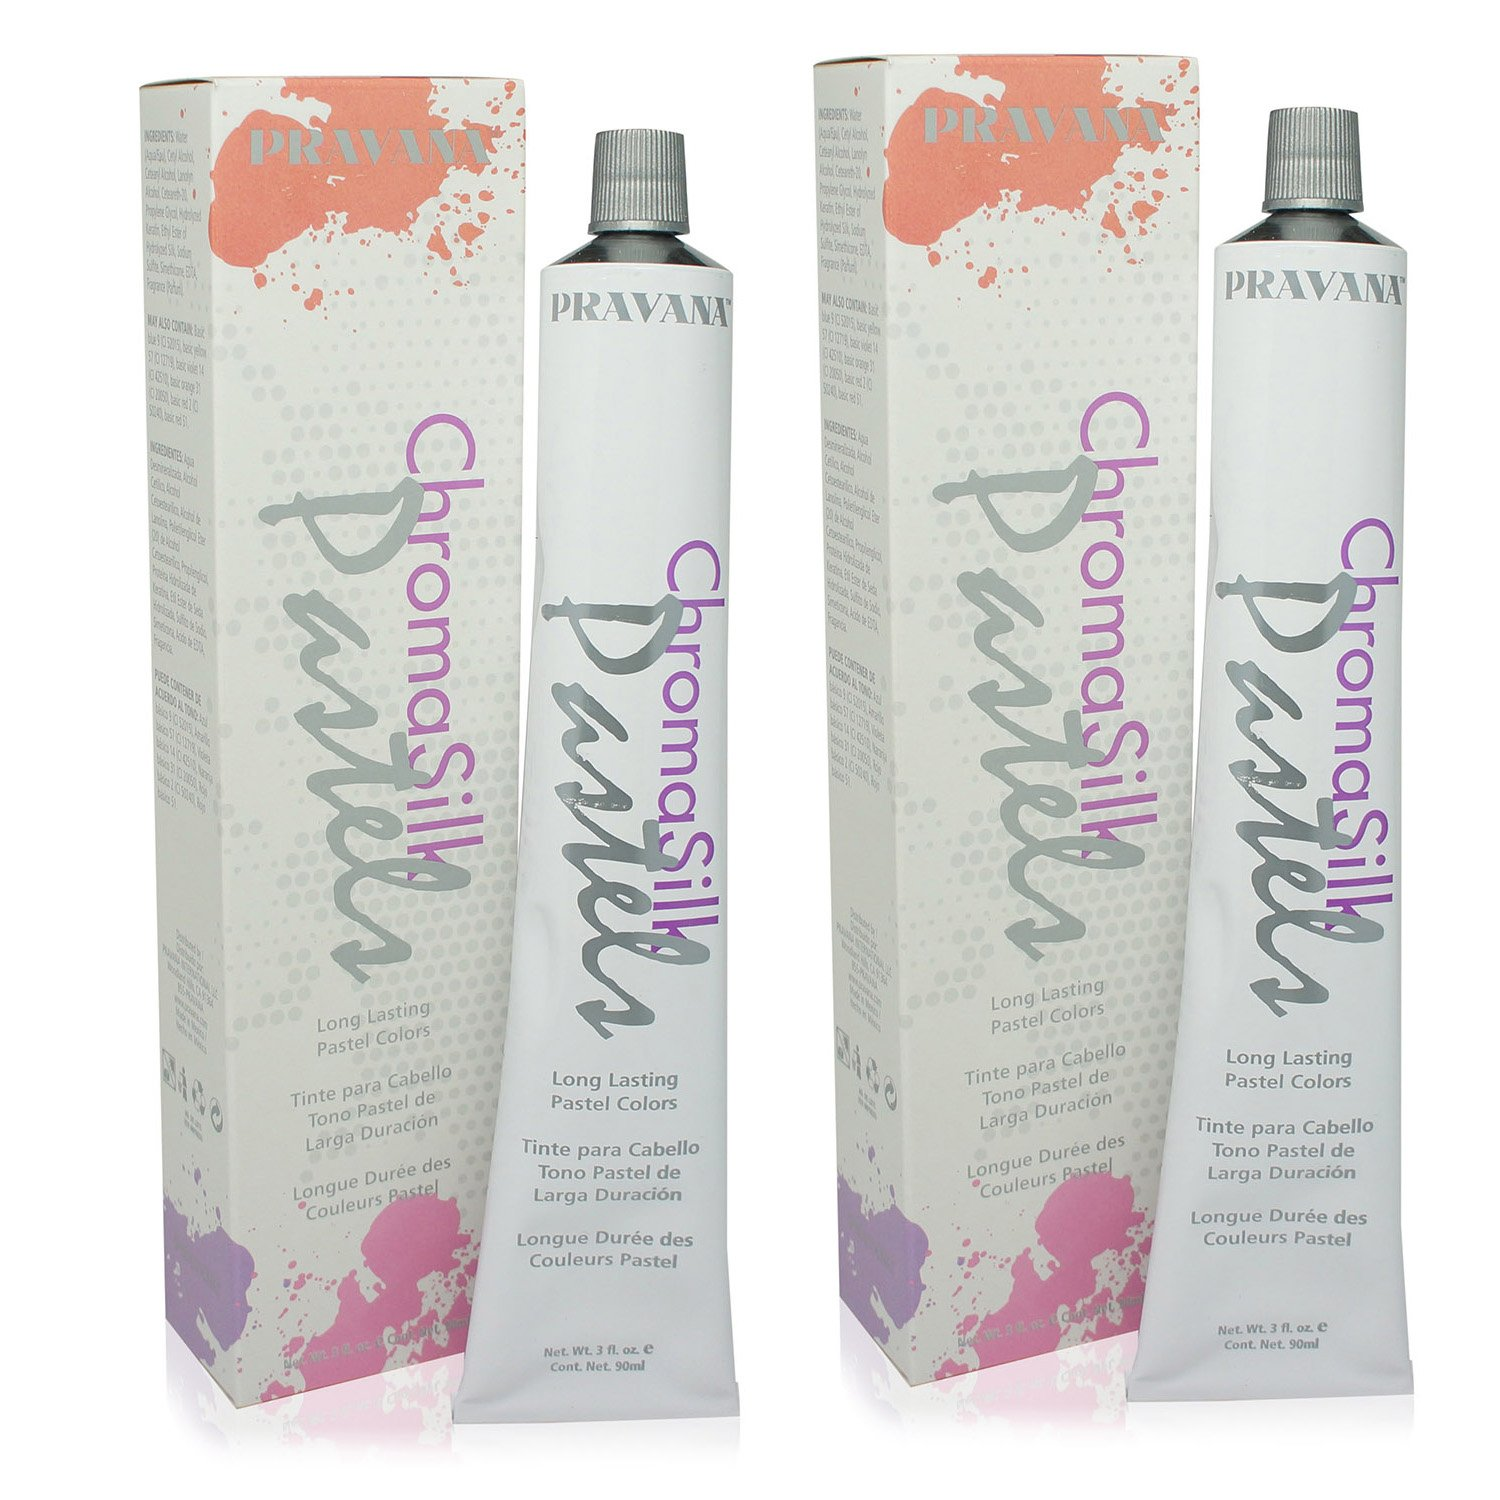 Pravana ChromaSilk Pastels (Pretty in Pink), 3 Fl 0z - 2 Pack by Pravana